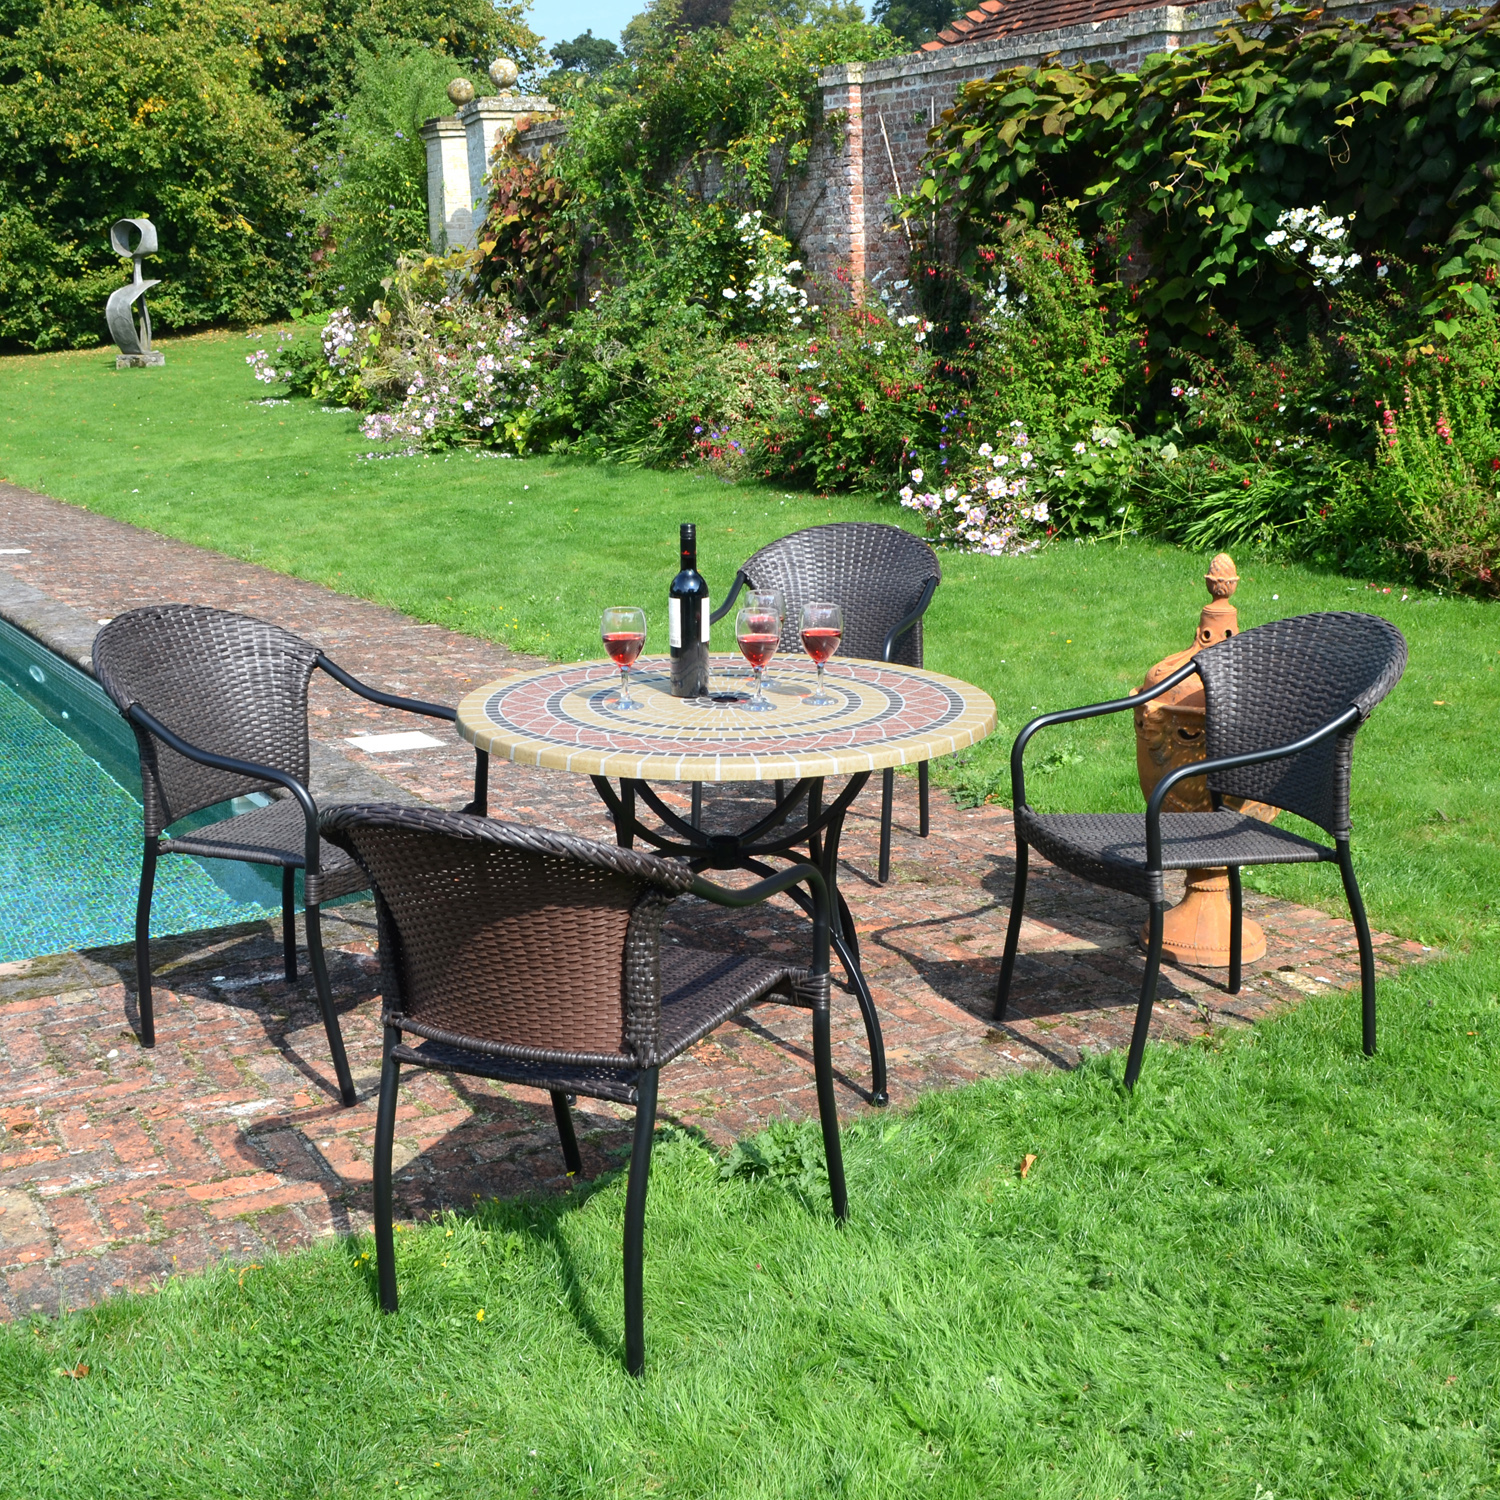 Mataro patio set Patio products